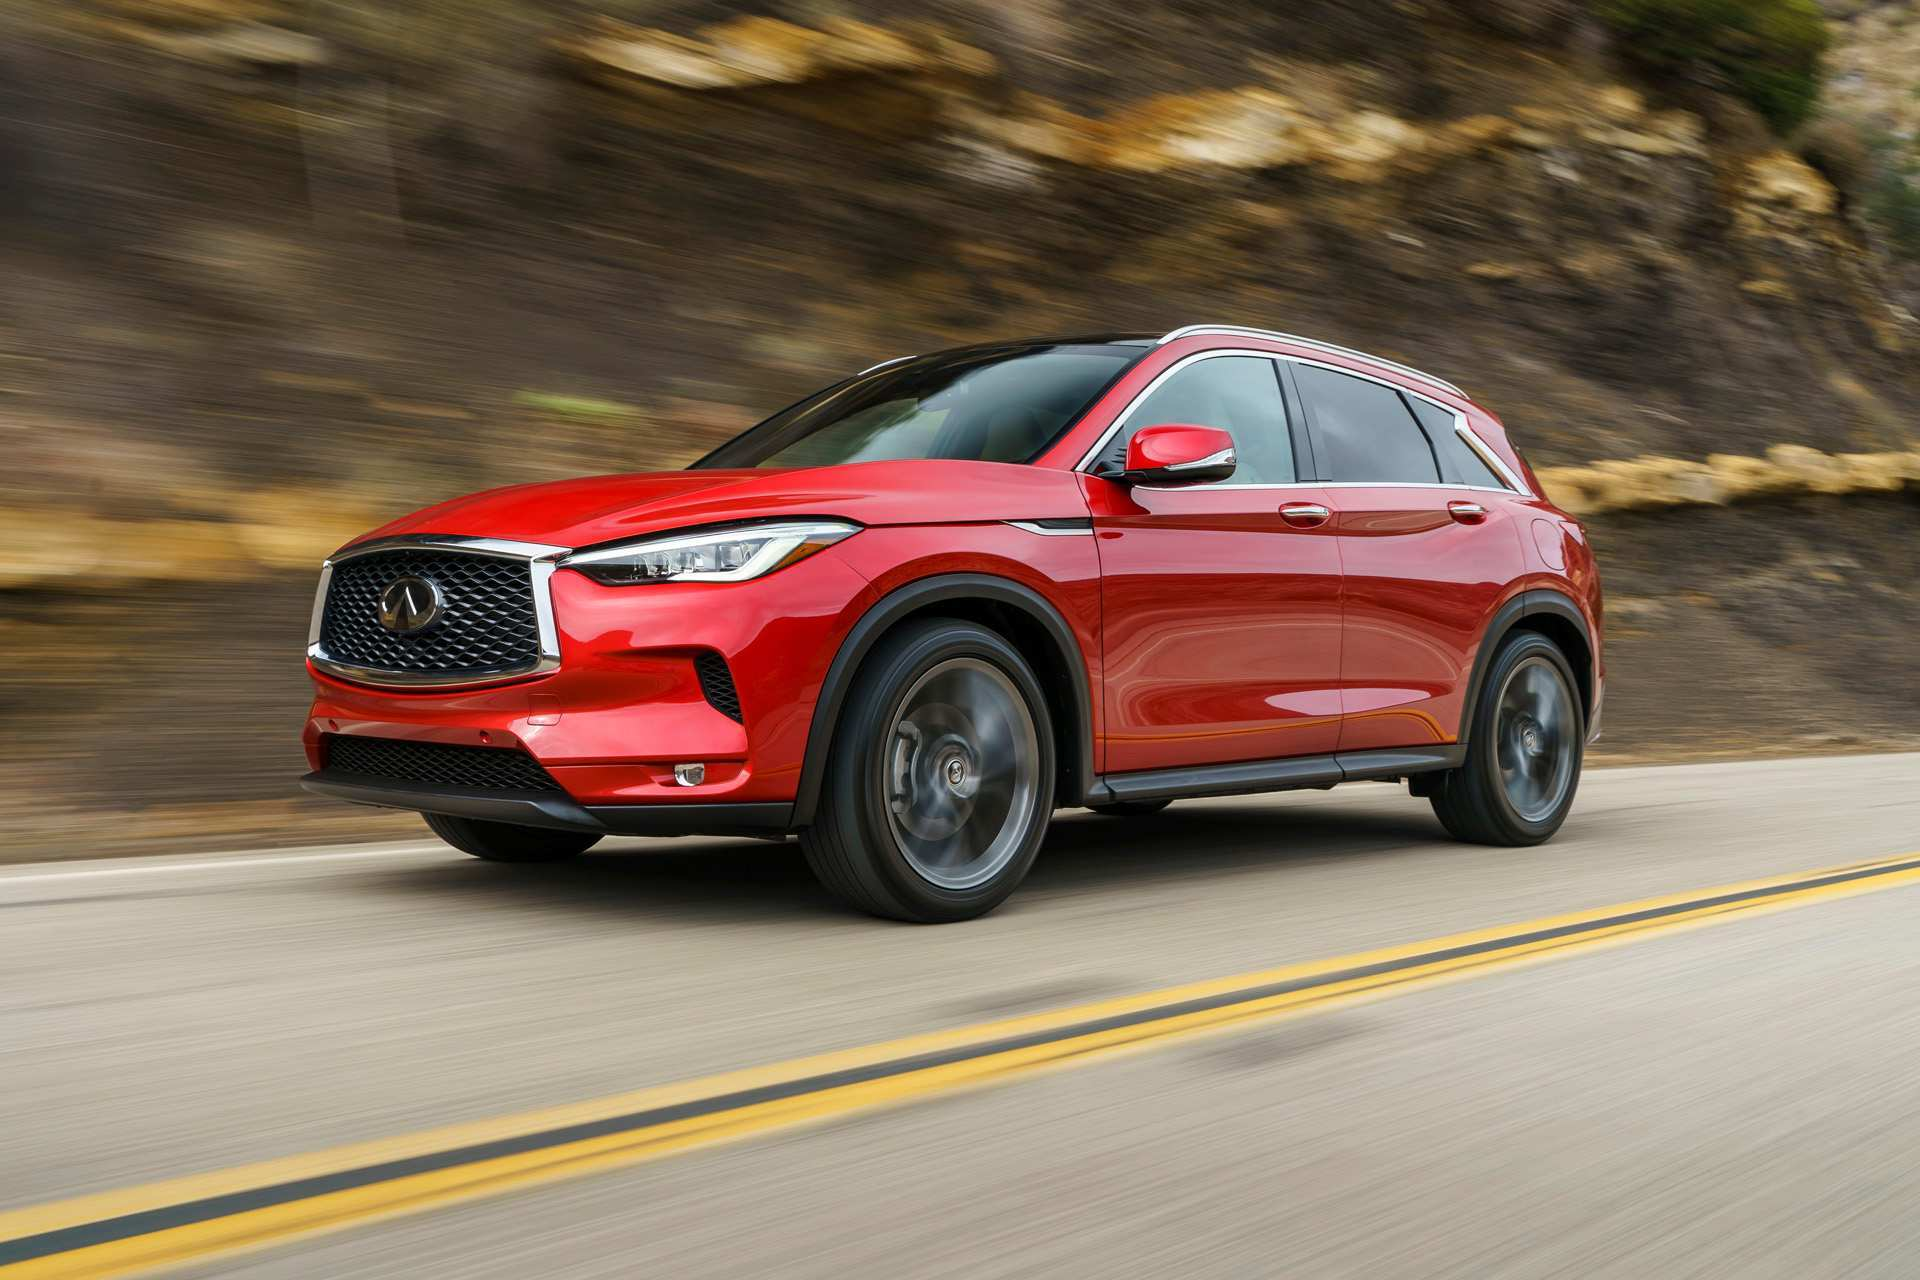 39 Great 2019 Infiniti Qx50 Review Spy Shoot for 2019 Infiniti Qx50 Review